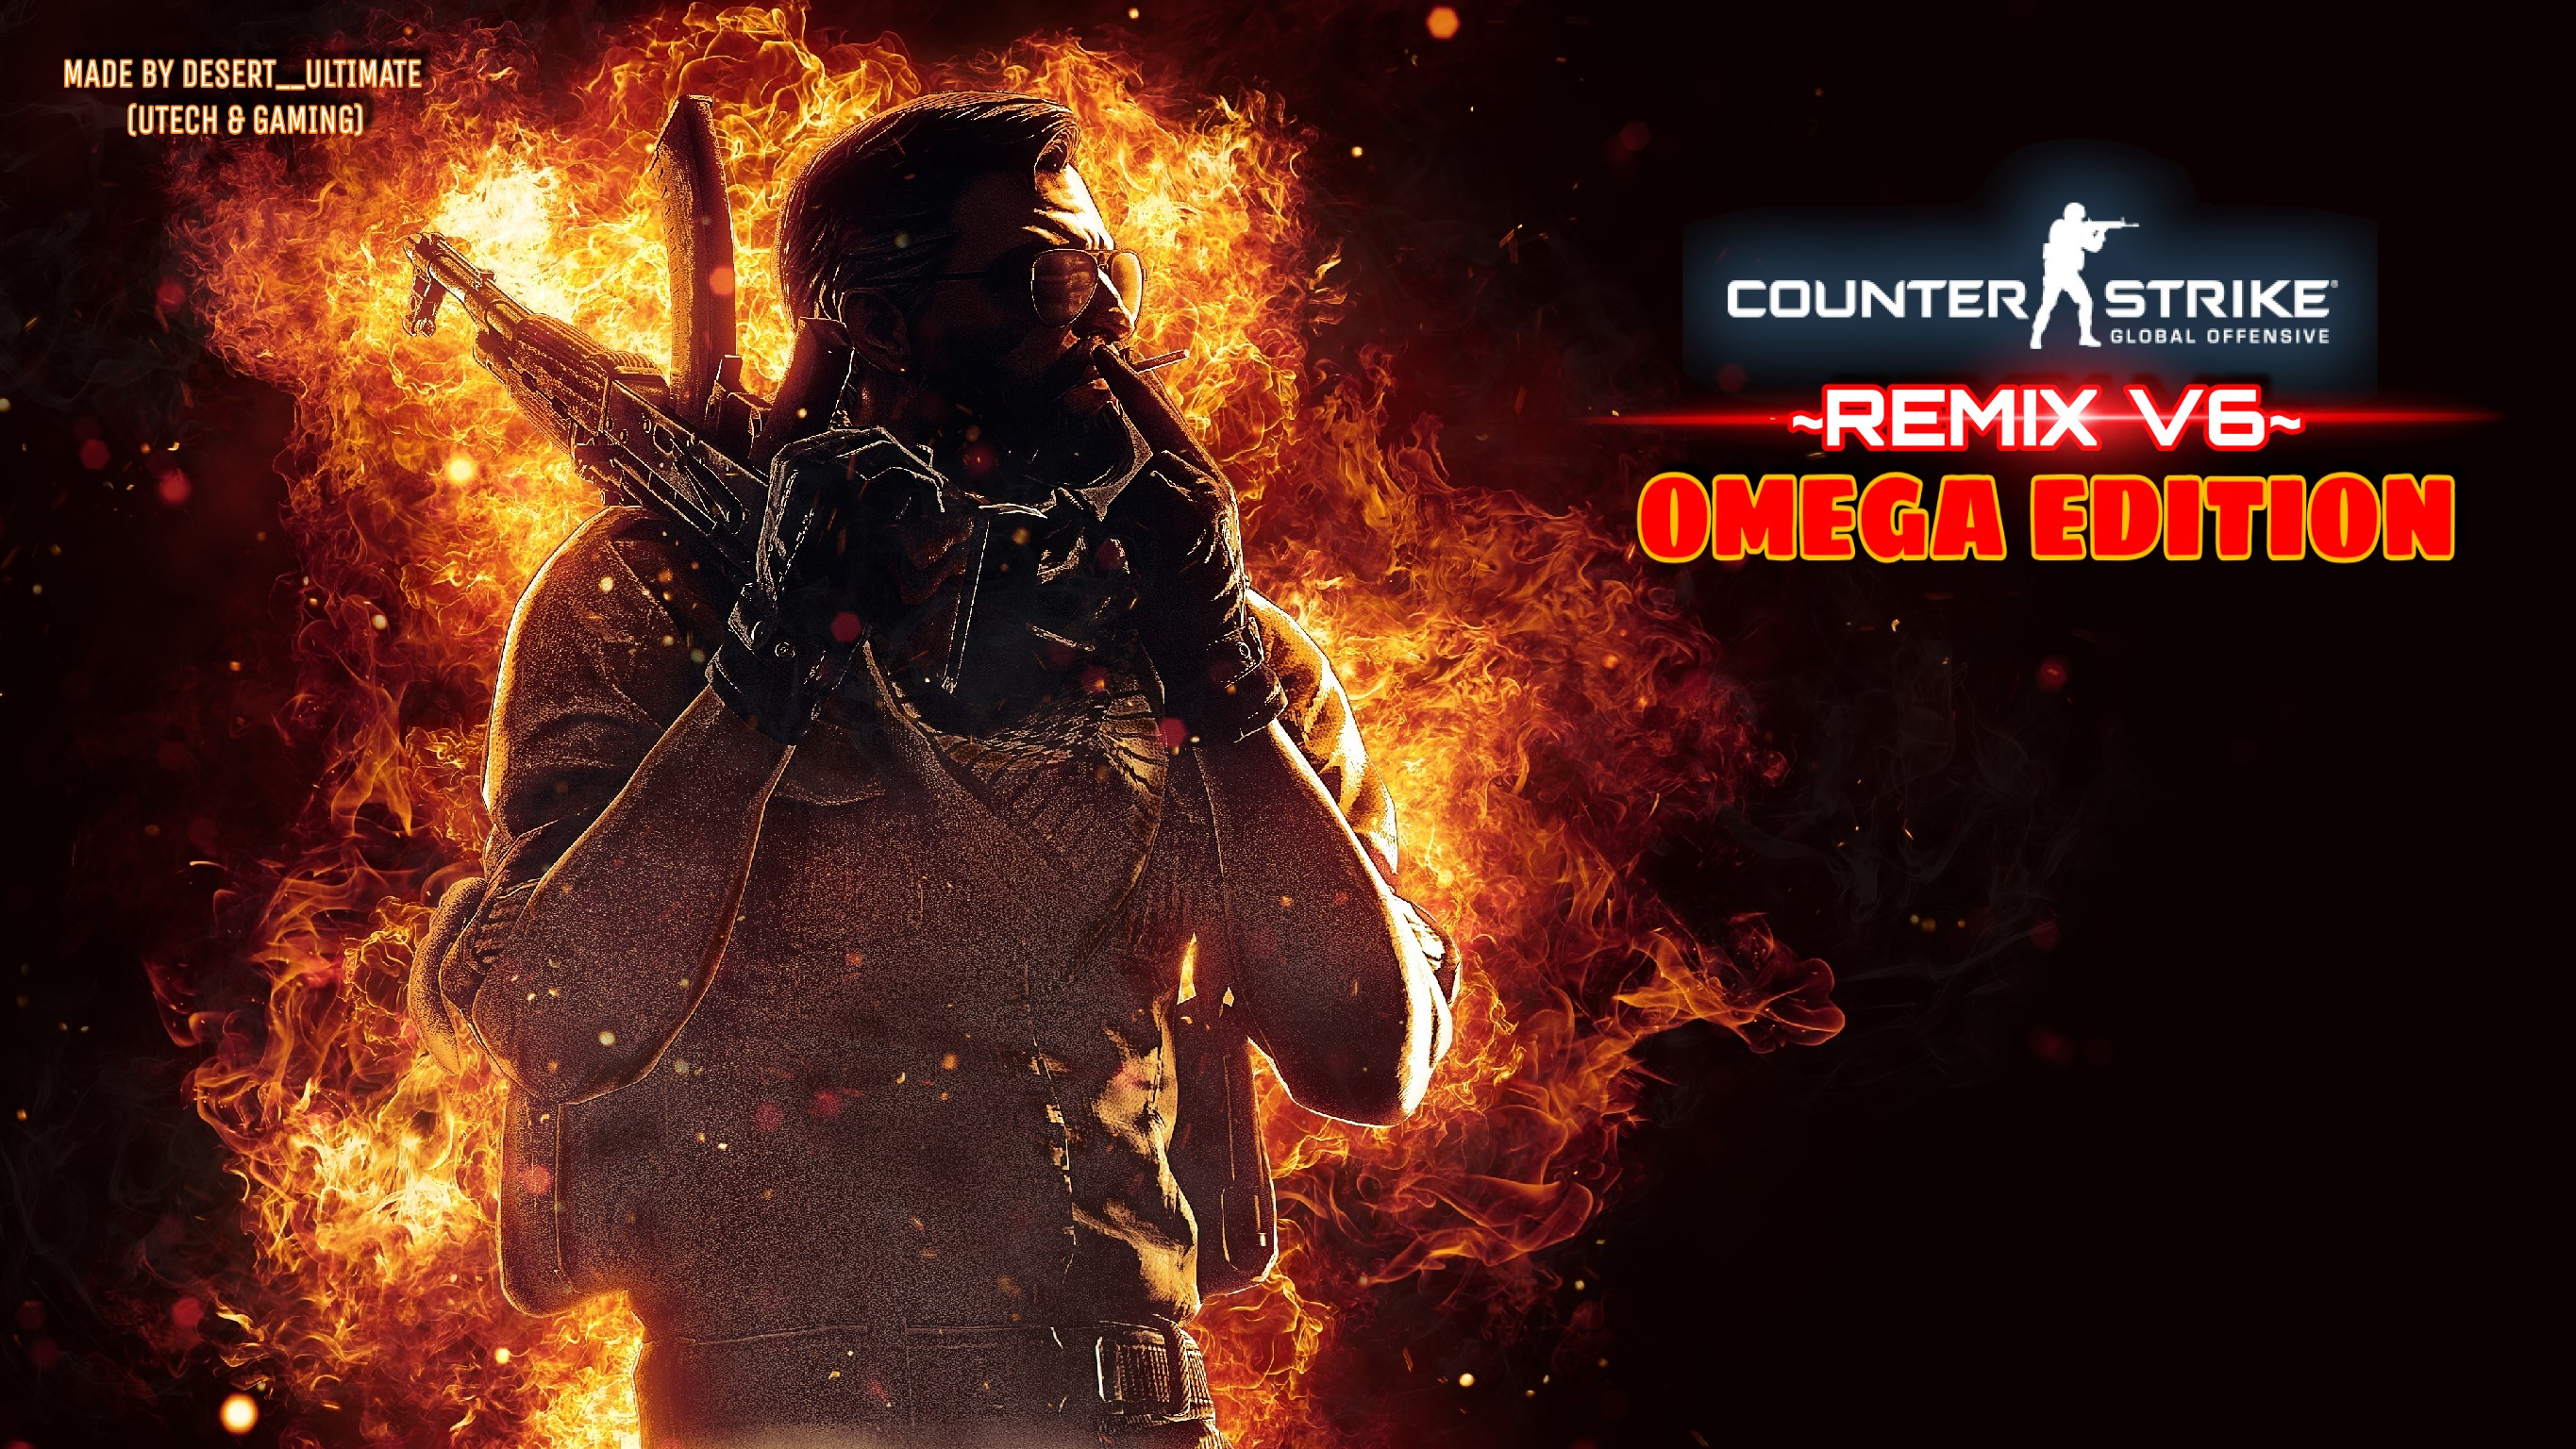 CSGO - ReMiX- V6 : OMEGA EDITION mod for Counter-Strike